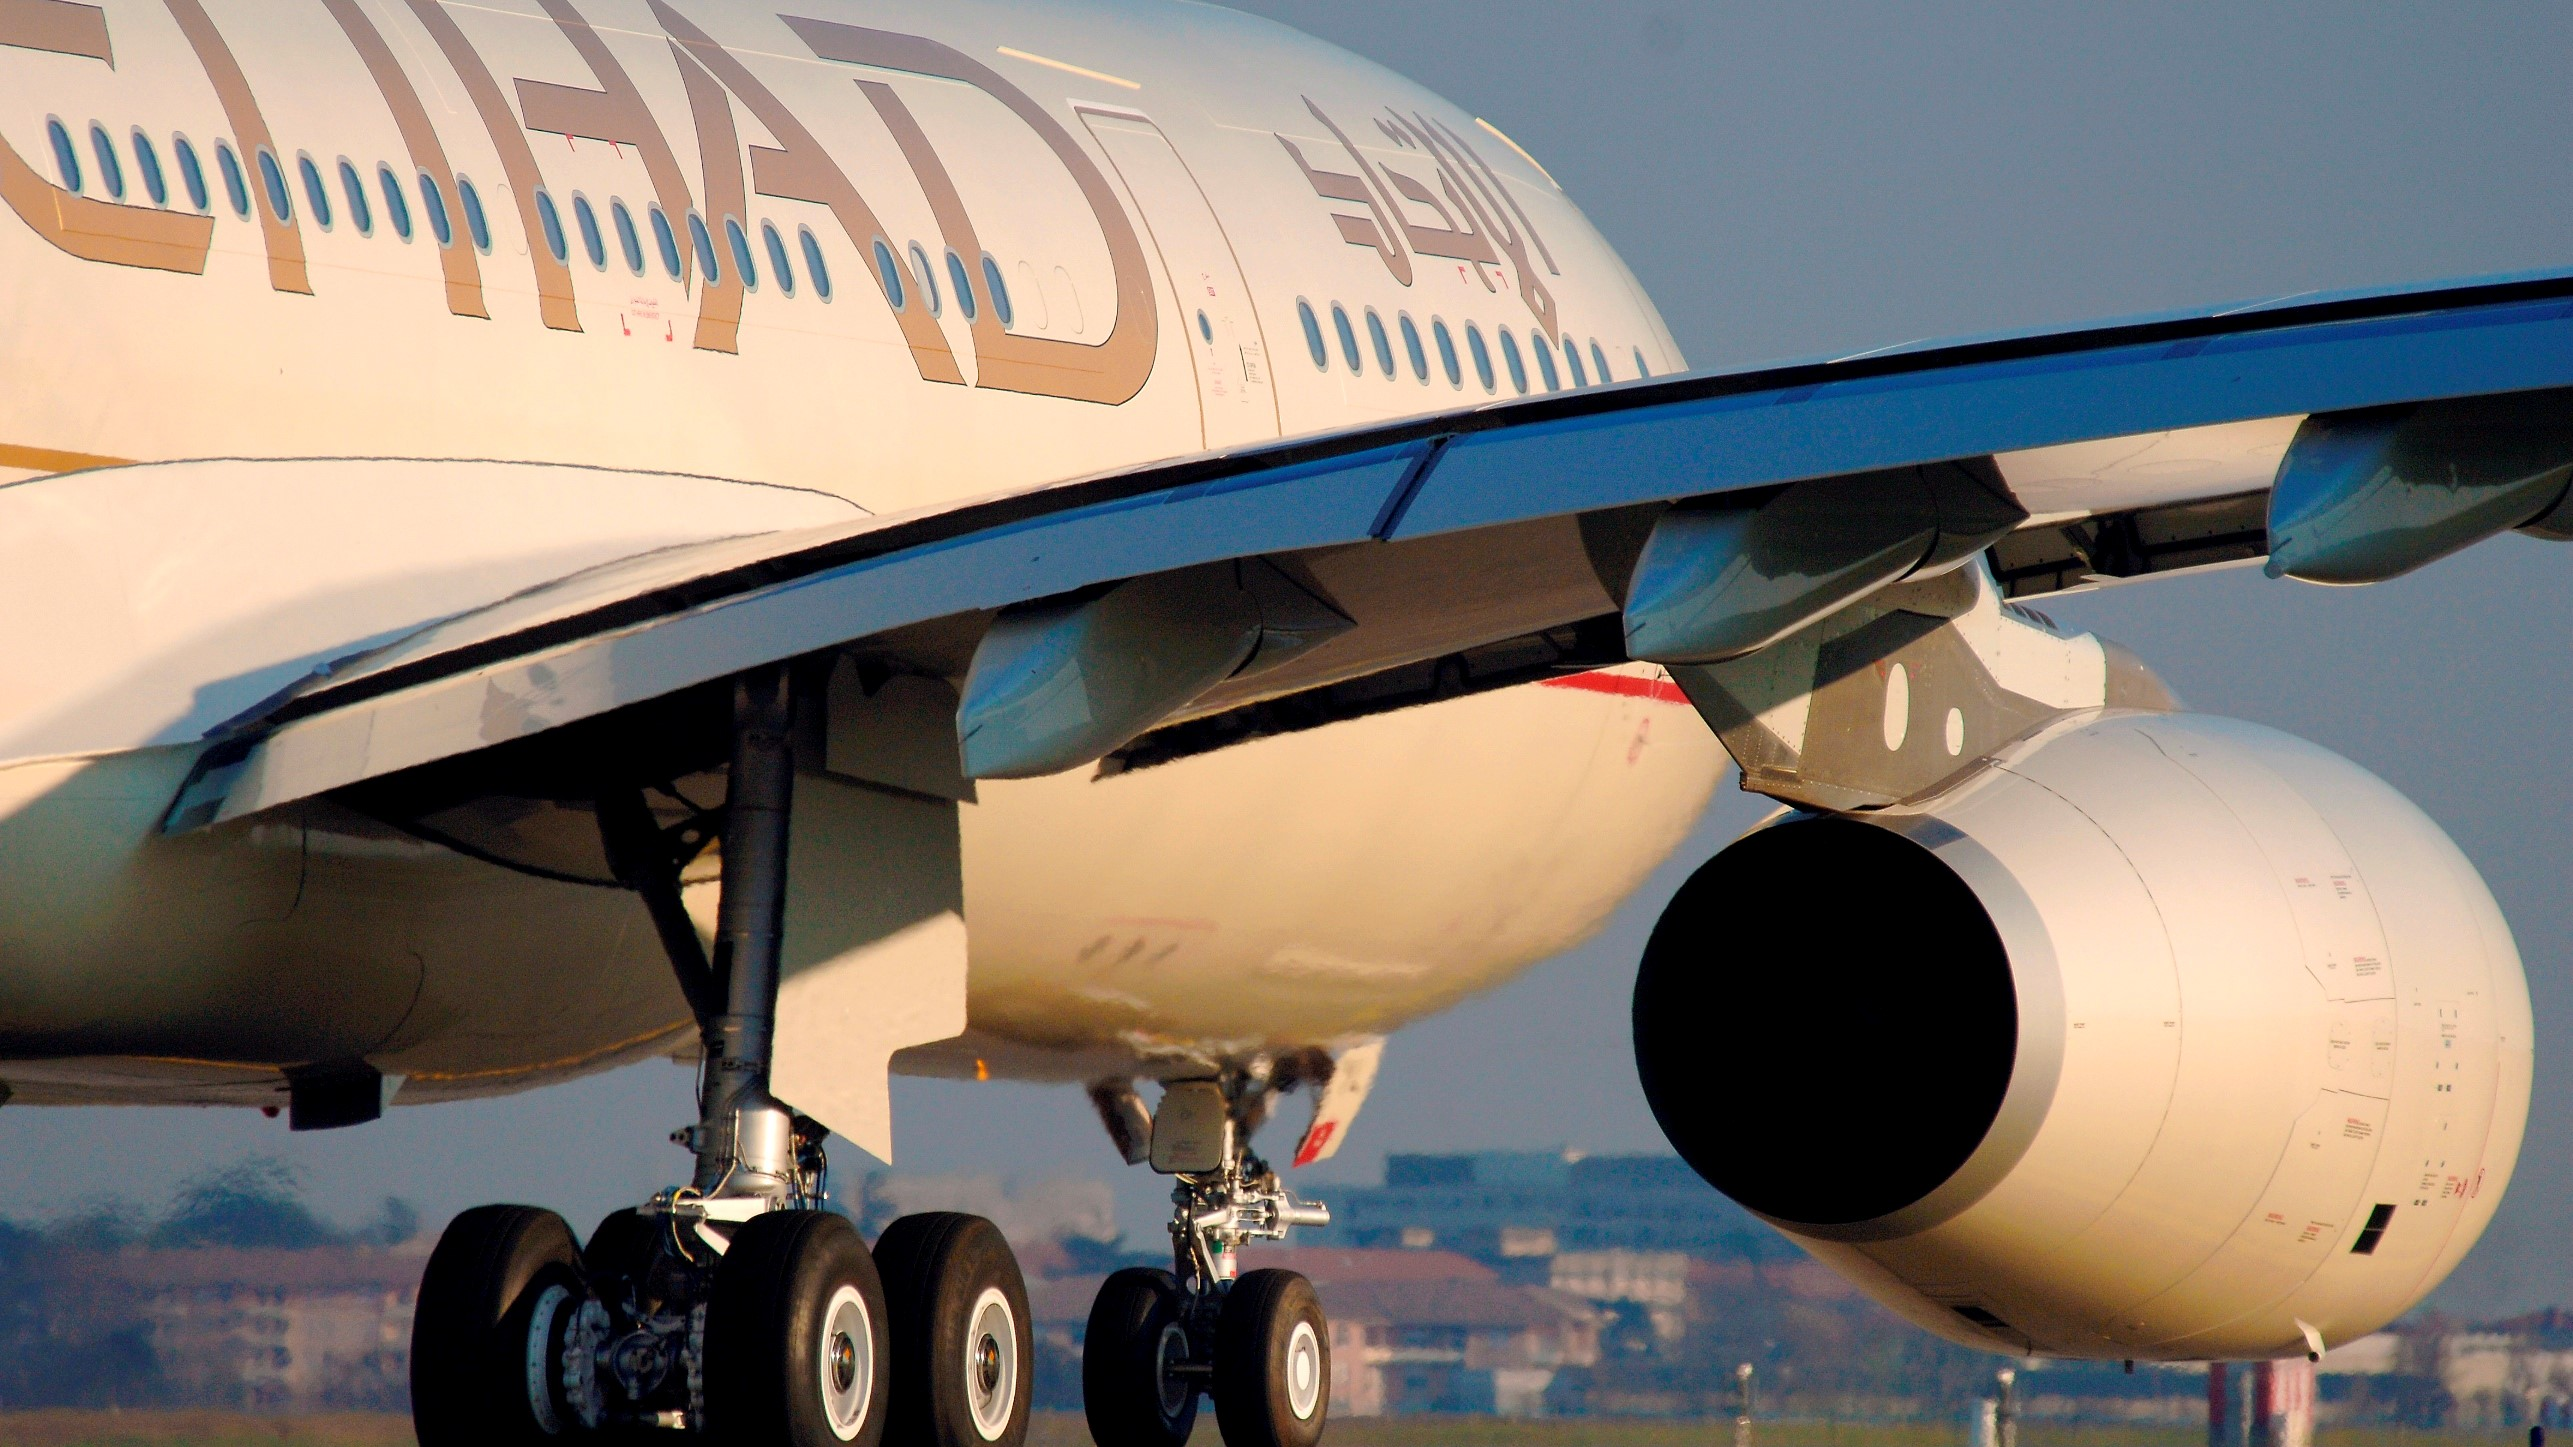 Etihad Airways reporting $ 1.28 billion loss in 2018 1